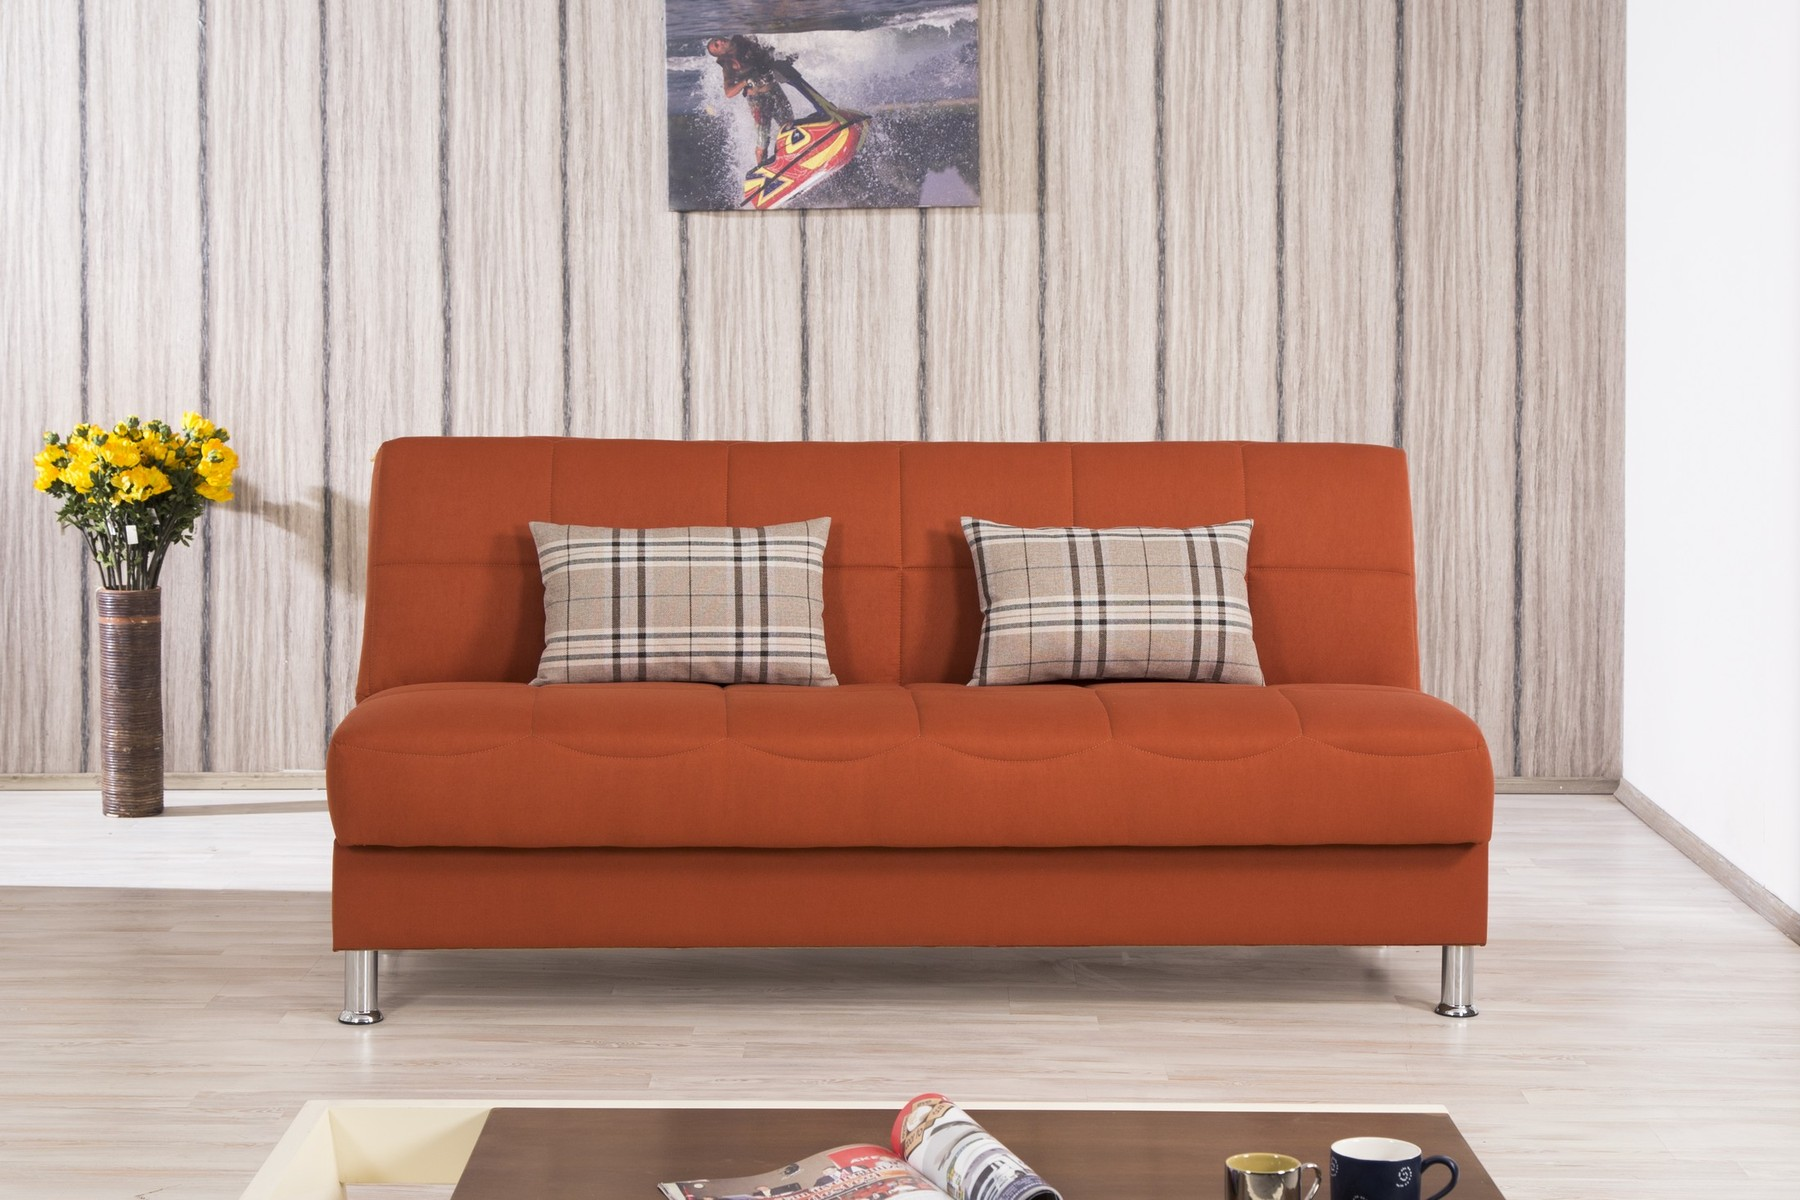 ashley furniture sofa sales fabric set for office eco plus orange convertible bed by casamode